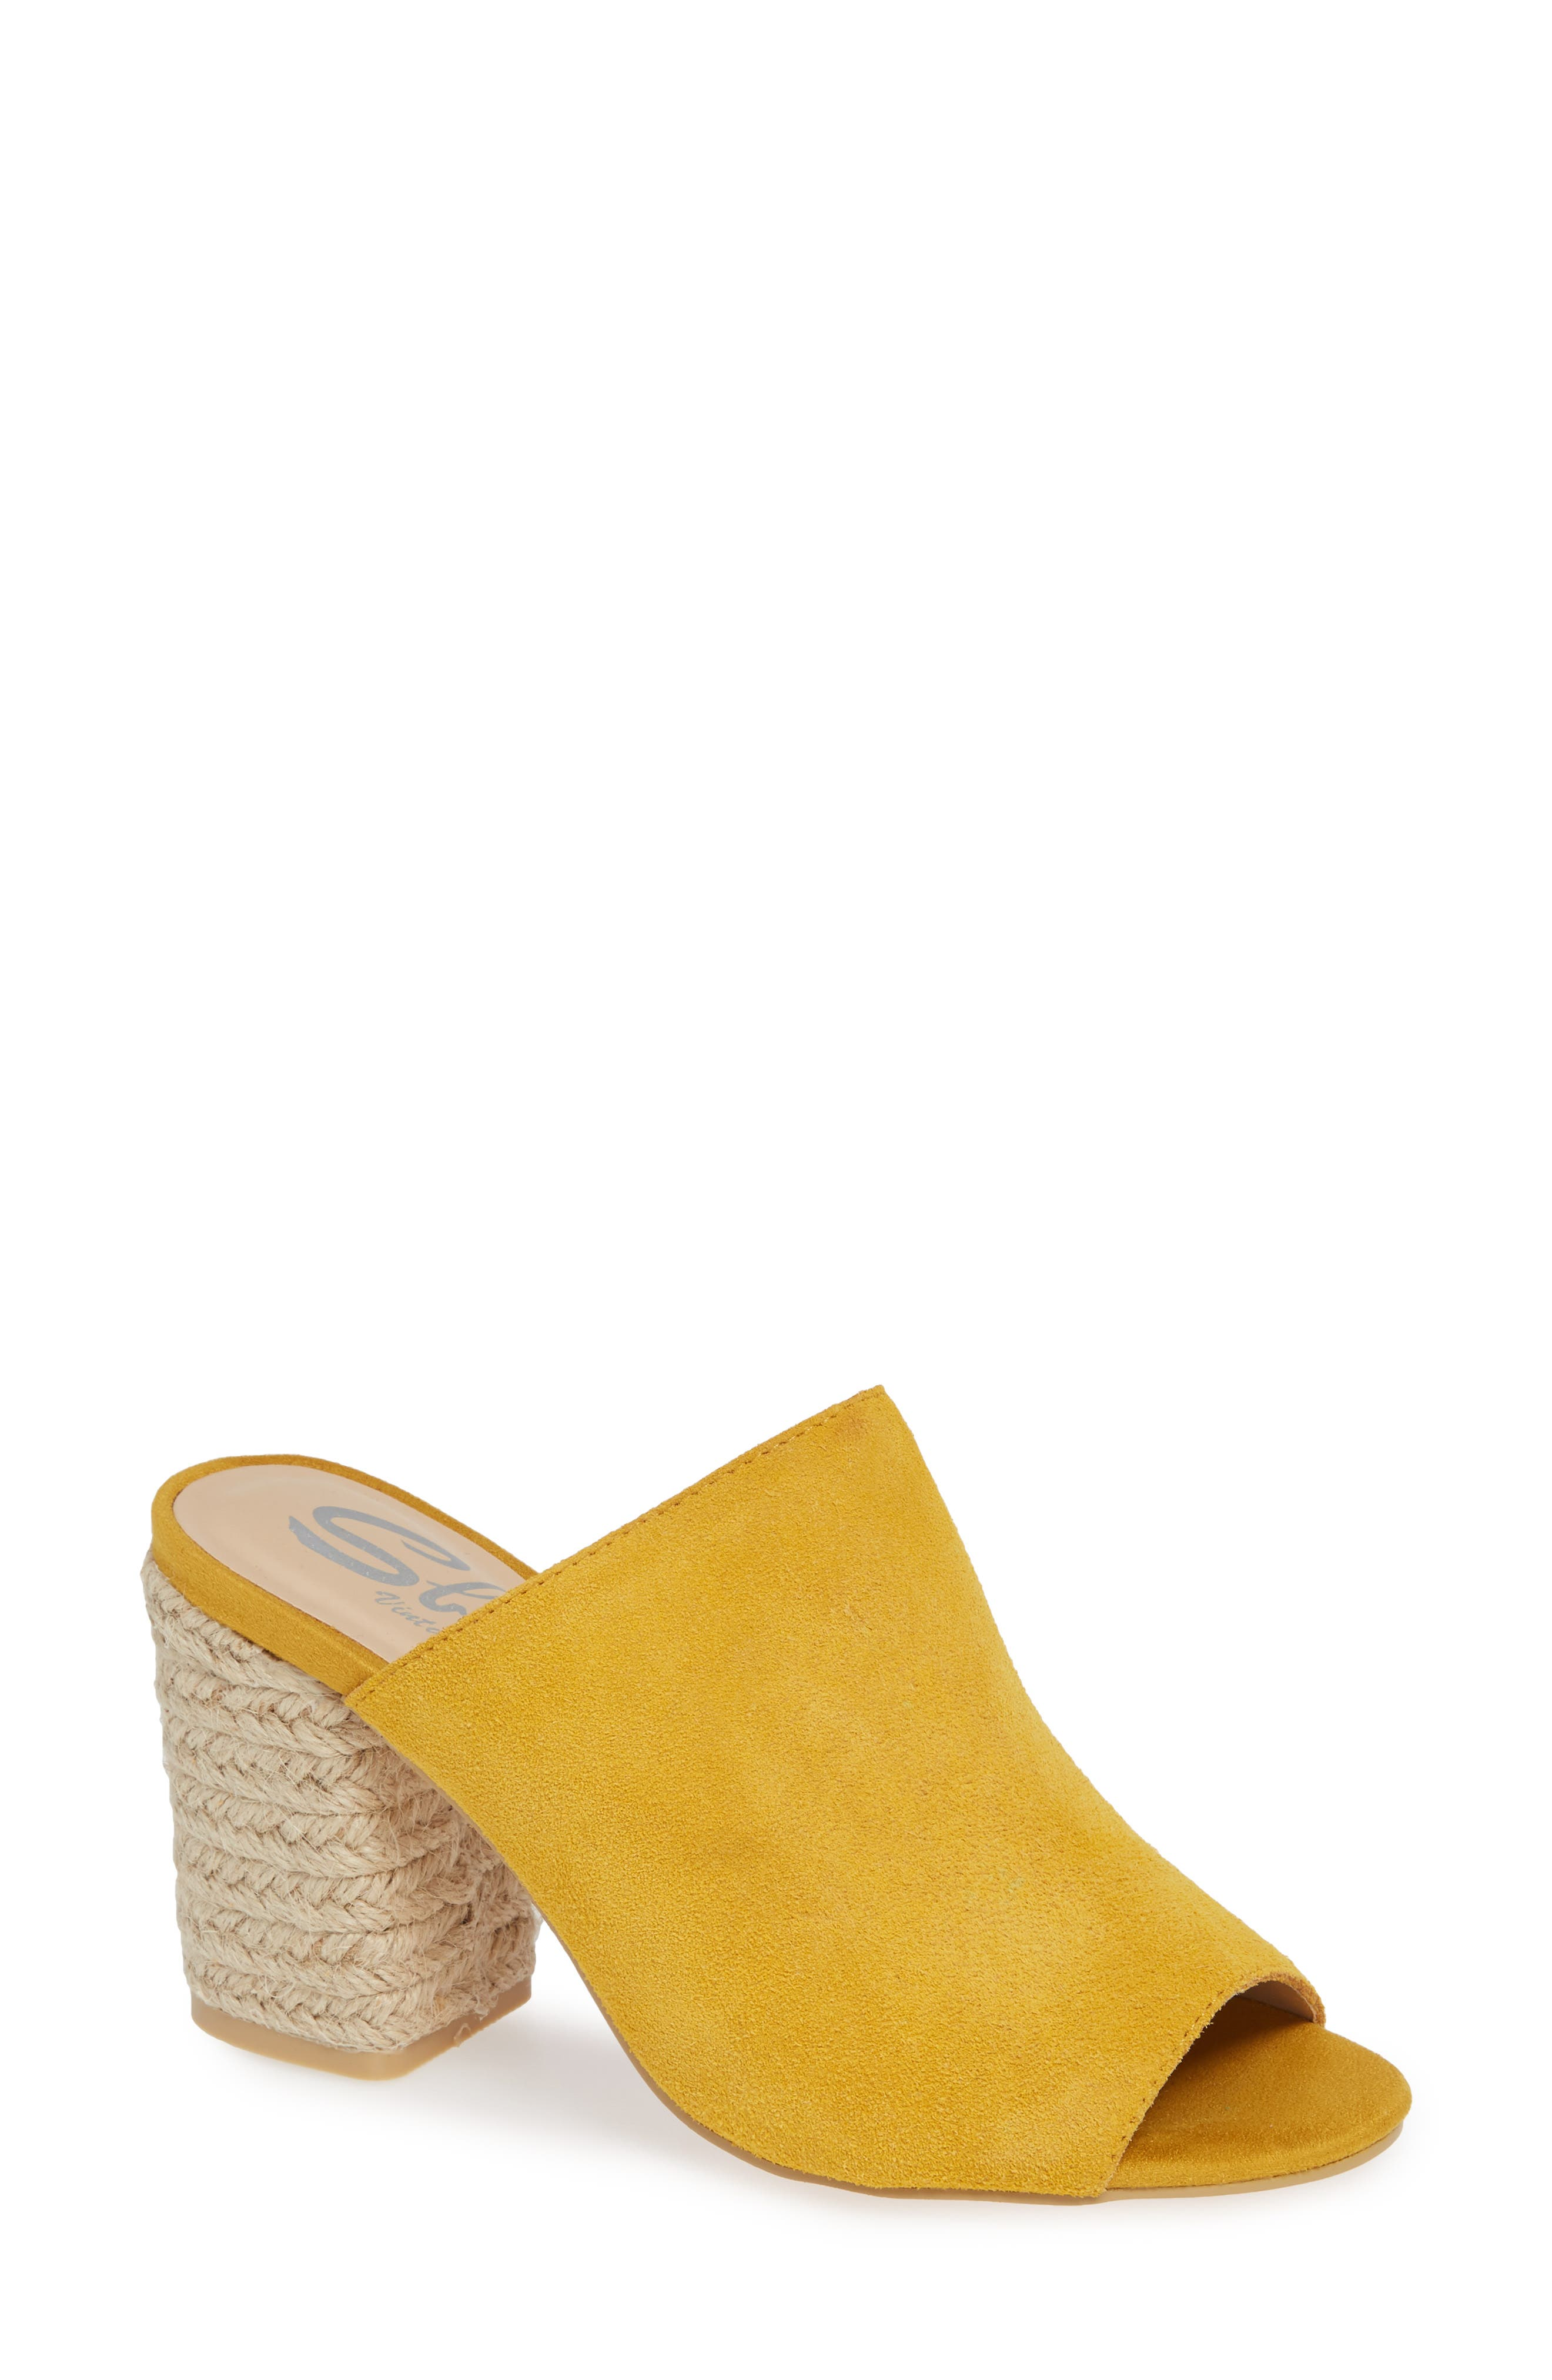 SBICCA, Helena Sandal, Main thumbnail 1, color, MUSTARD SUEDE